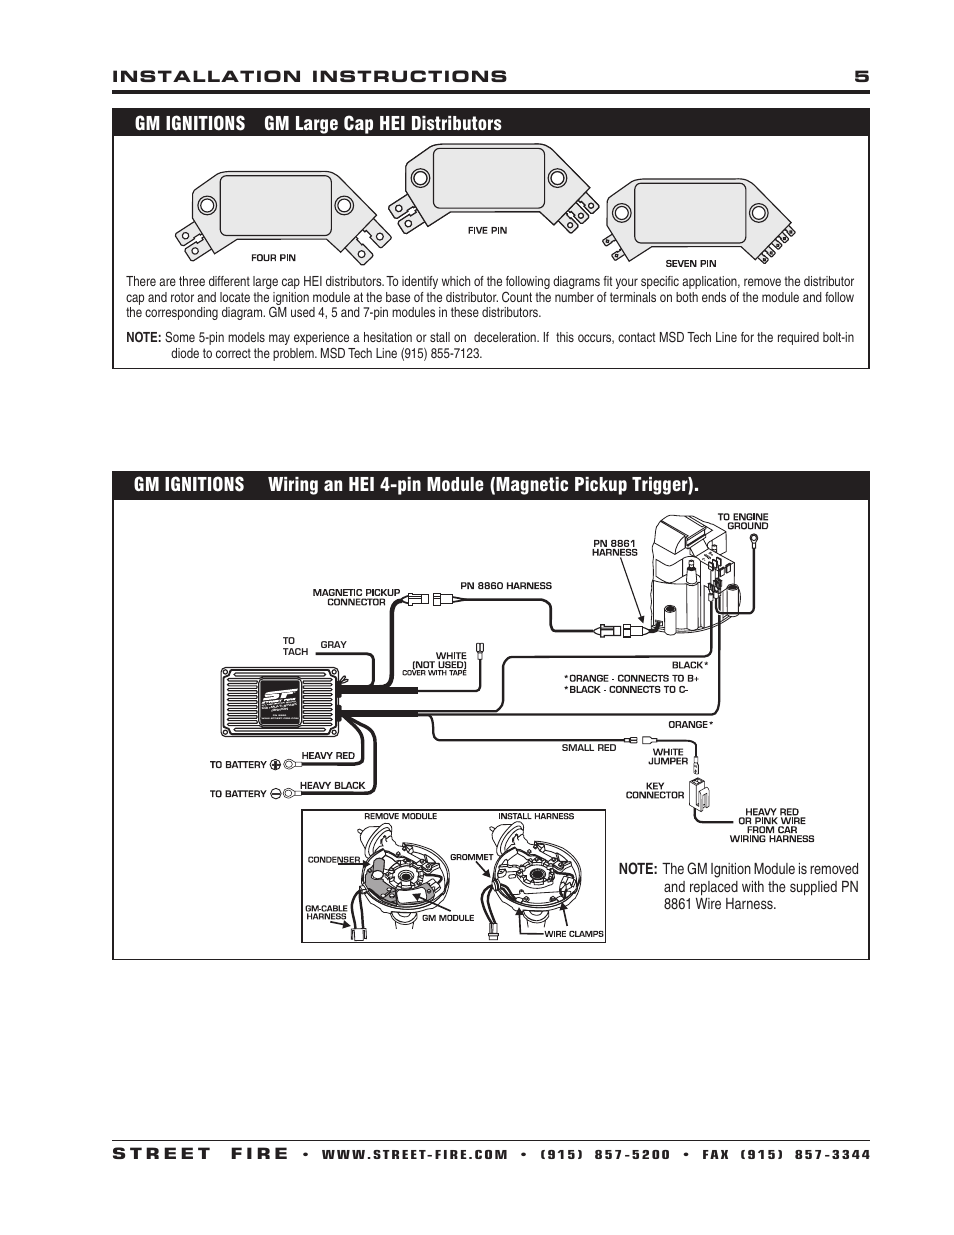 27 Msd Street Fire Wiring Diagram